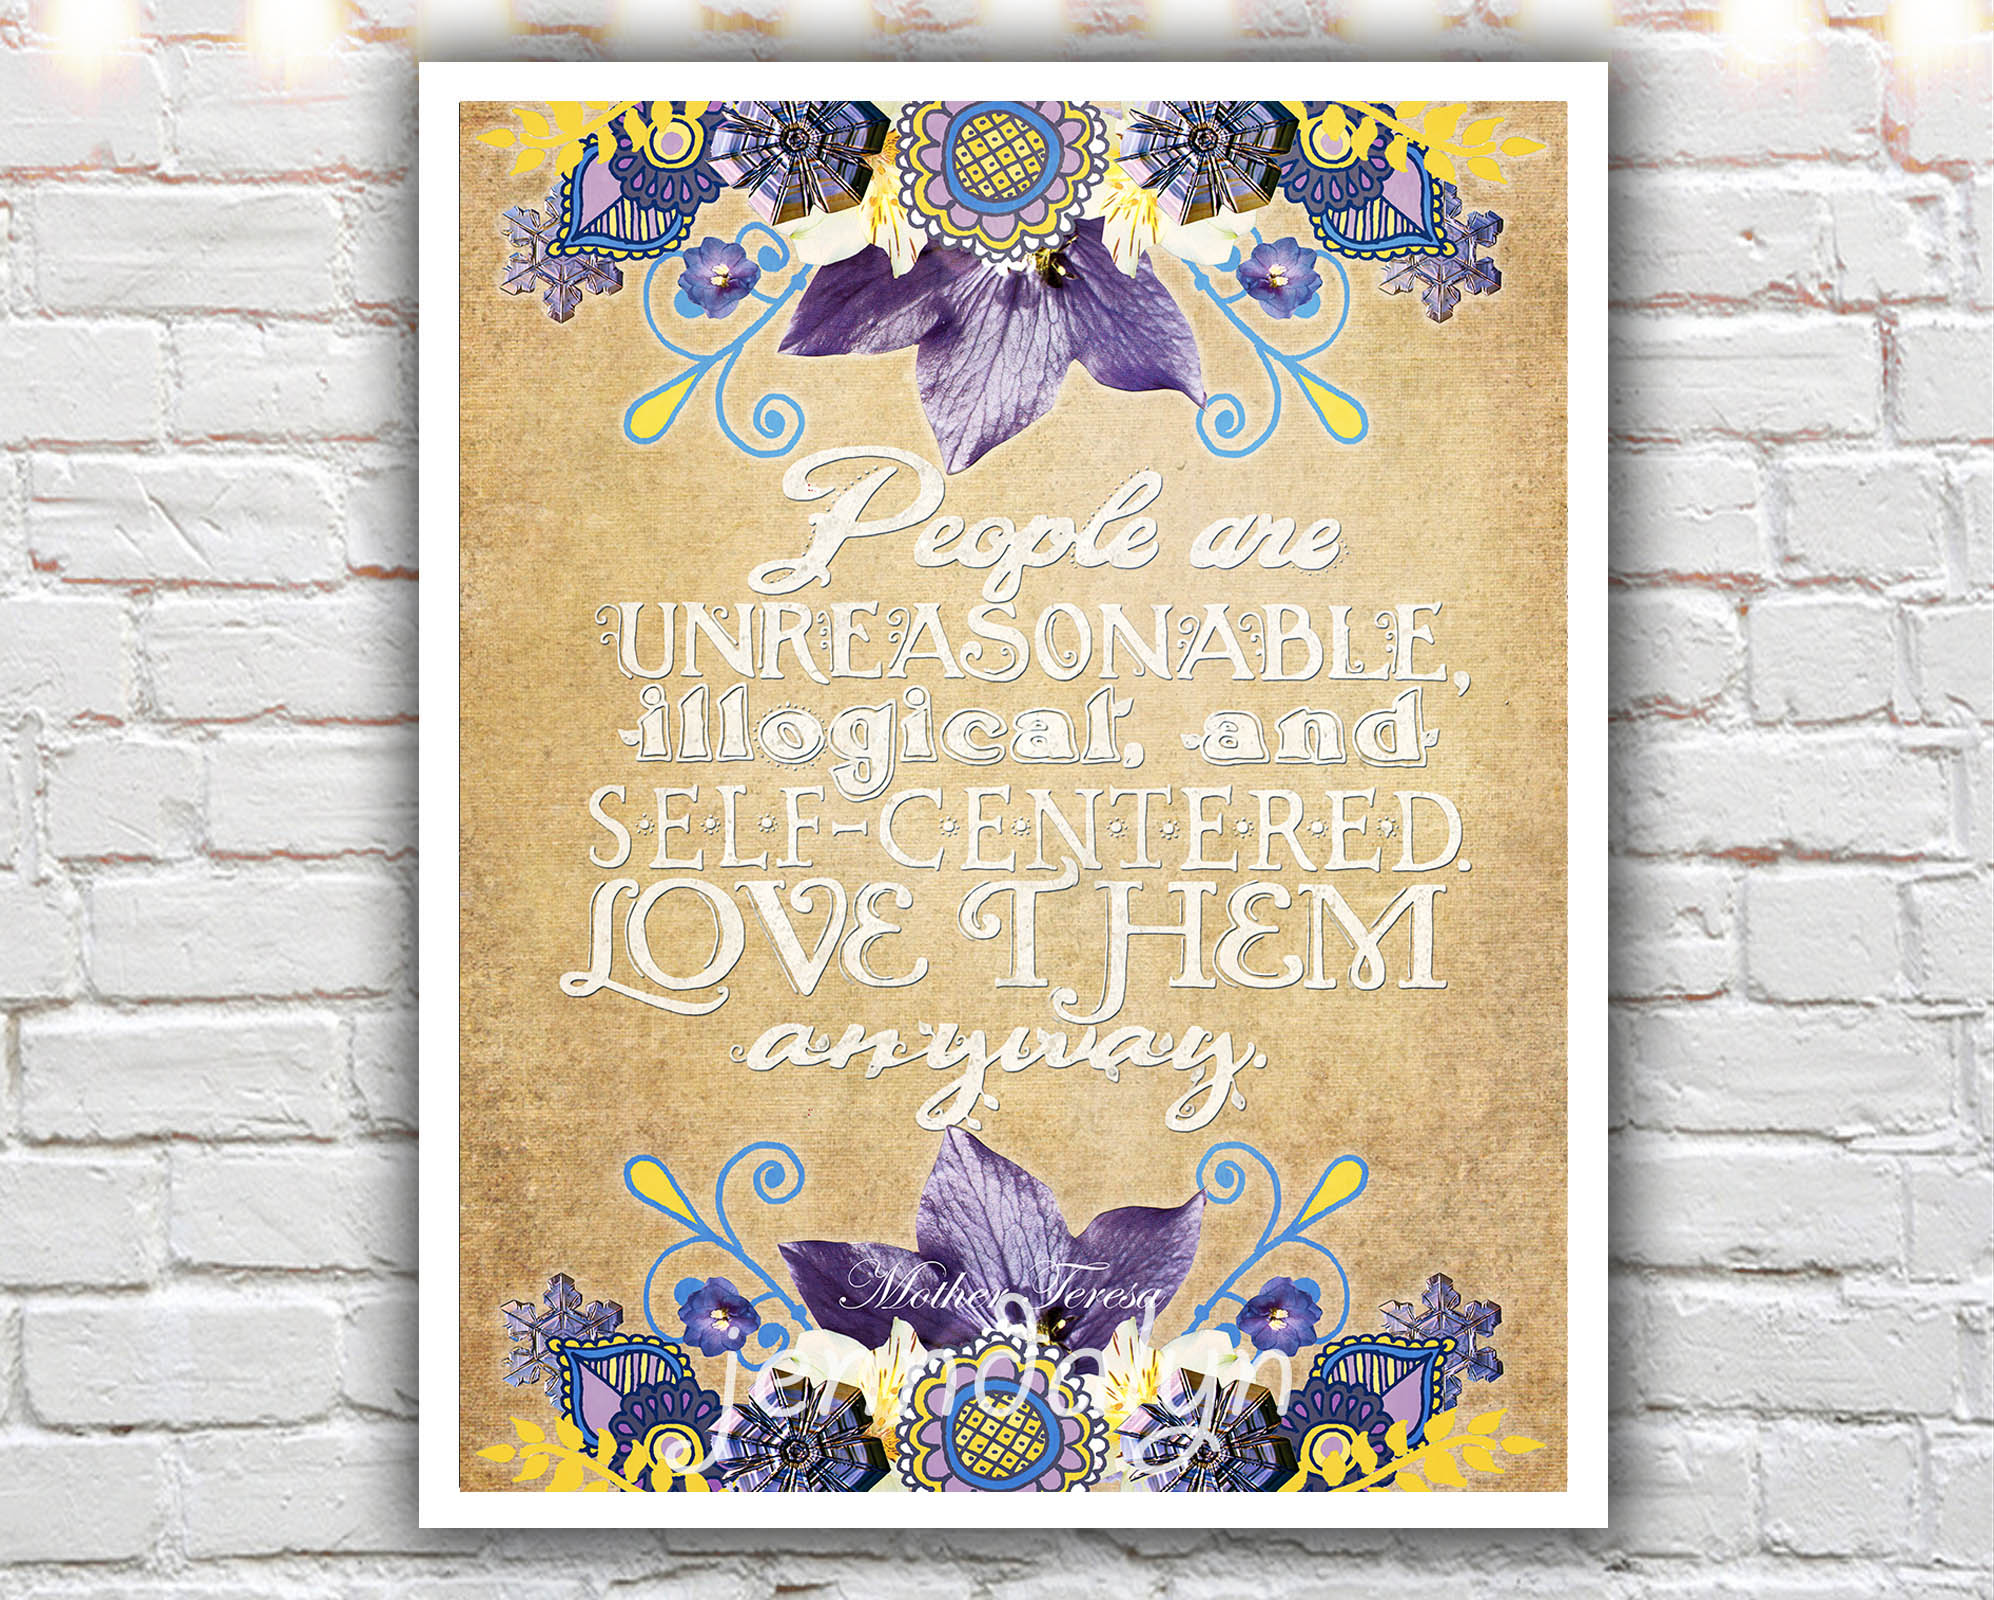 Mother Teresa Quotes Love Anyway Love Them Anyway Ii  16 X 20 Paper Print Mother Teresa Quote